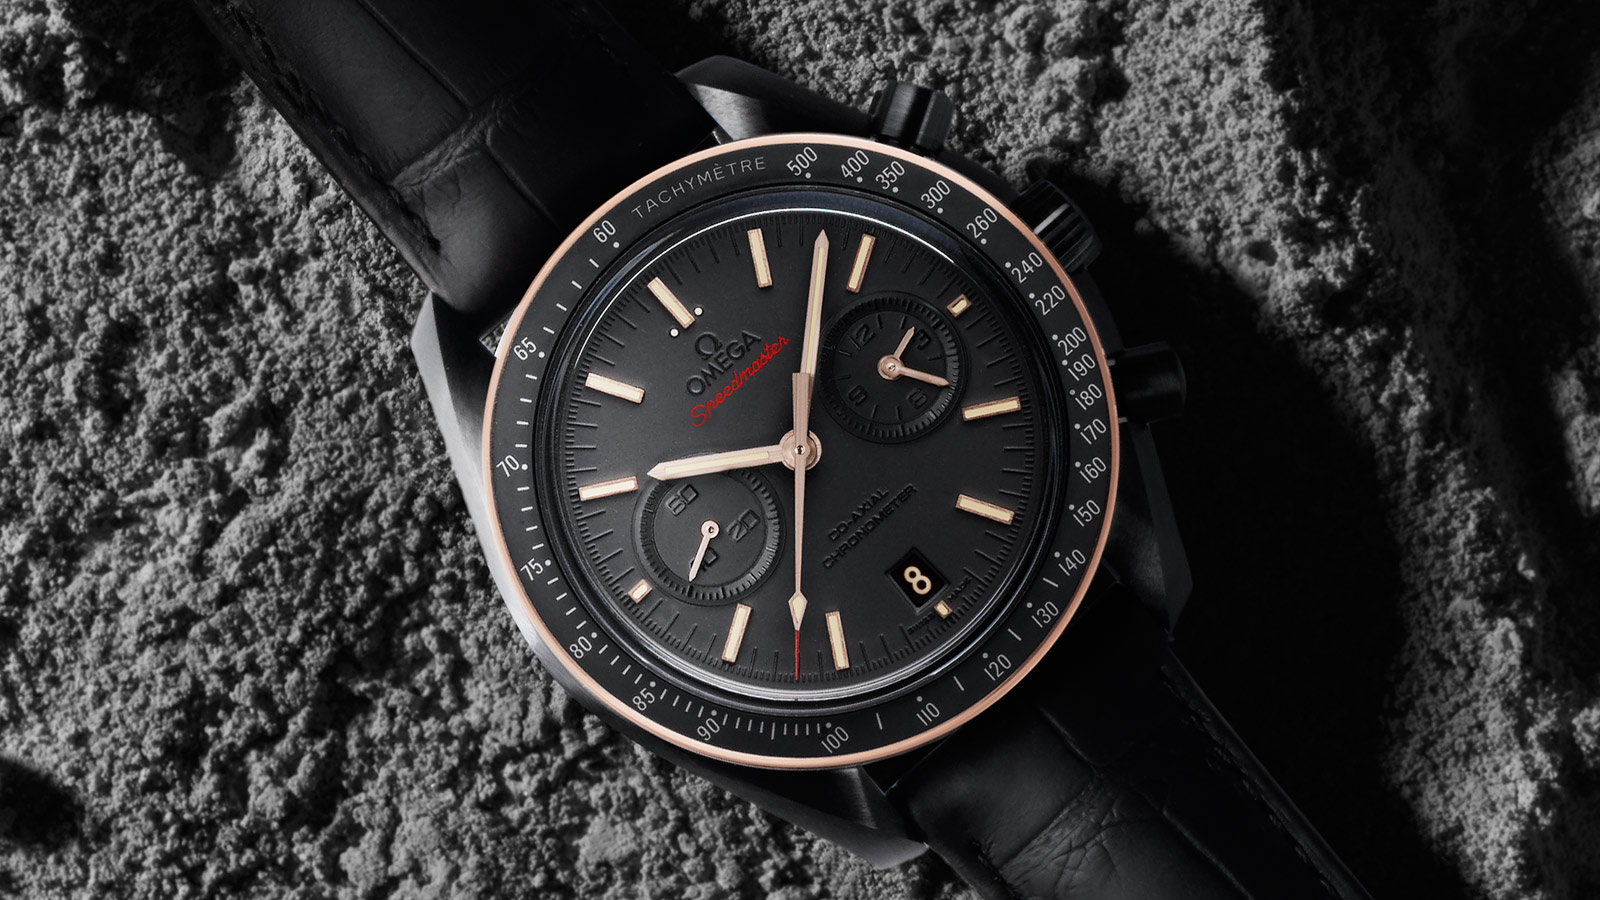 Speedmaster Moonwatch Moonwatch Omega Co‑Axial Chronograph 44.25 mm - 311.63.44.51.06.001 - View 1